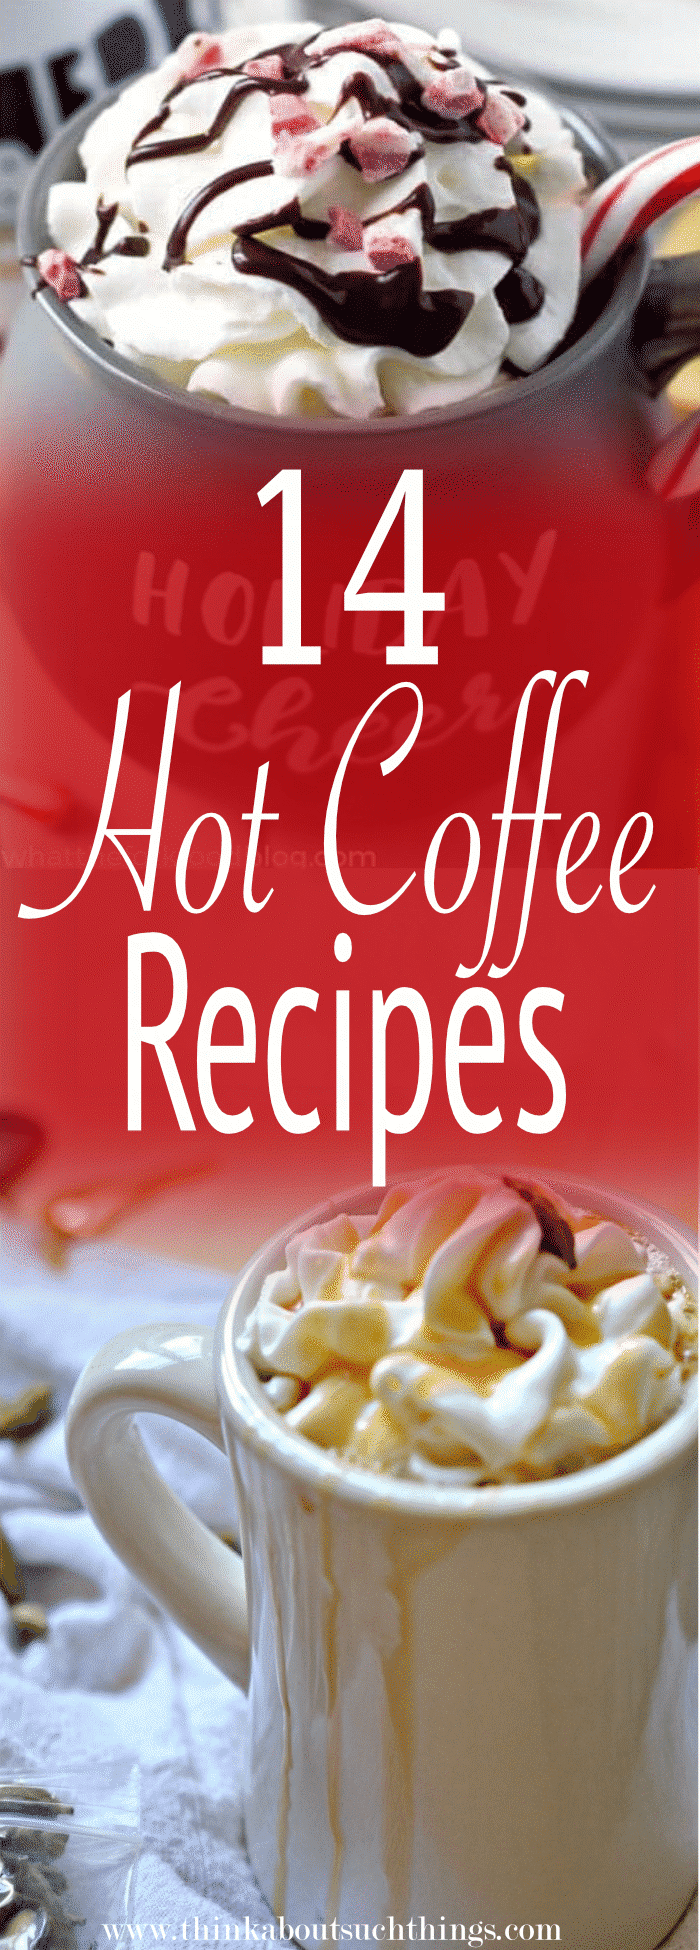 hot coffee recipes